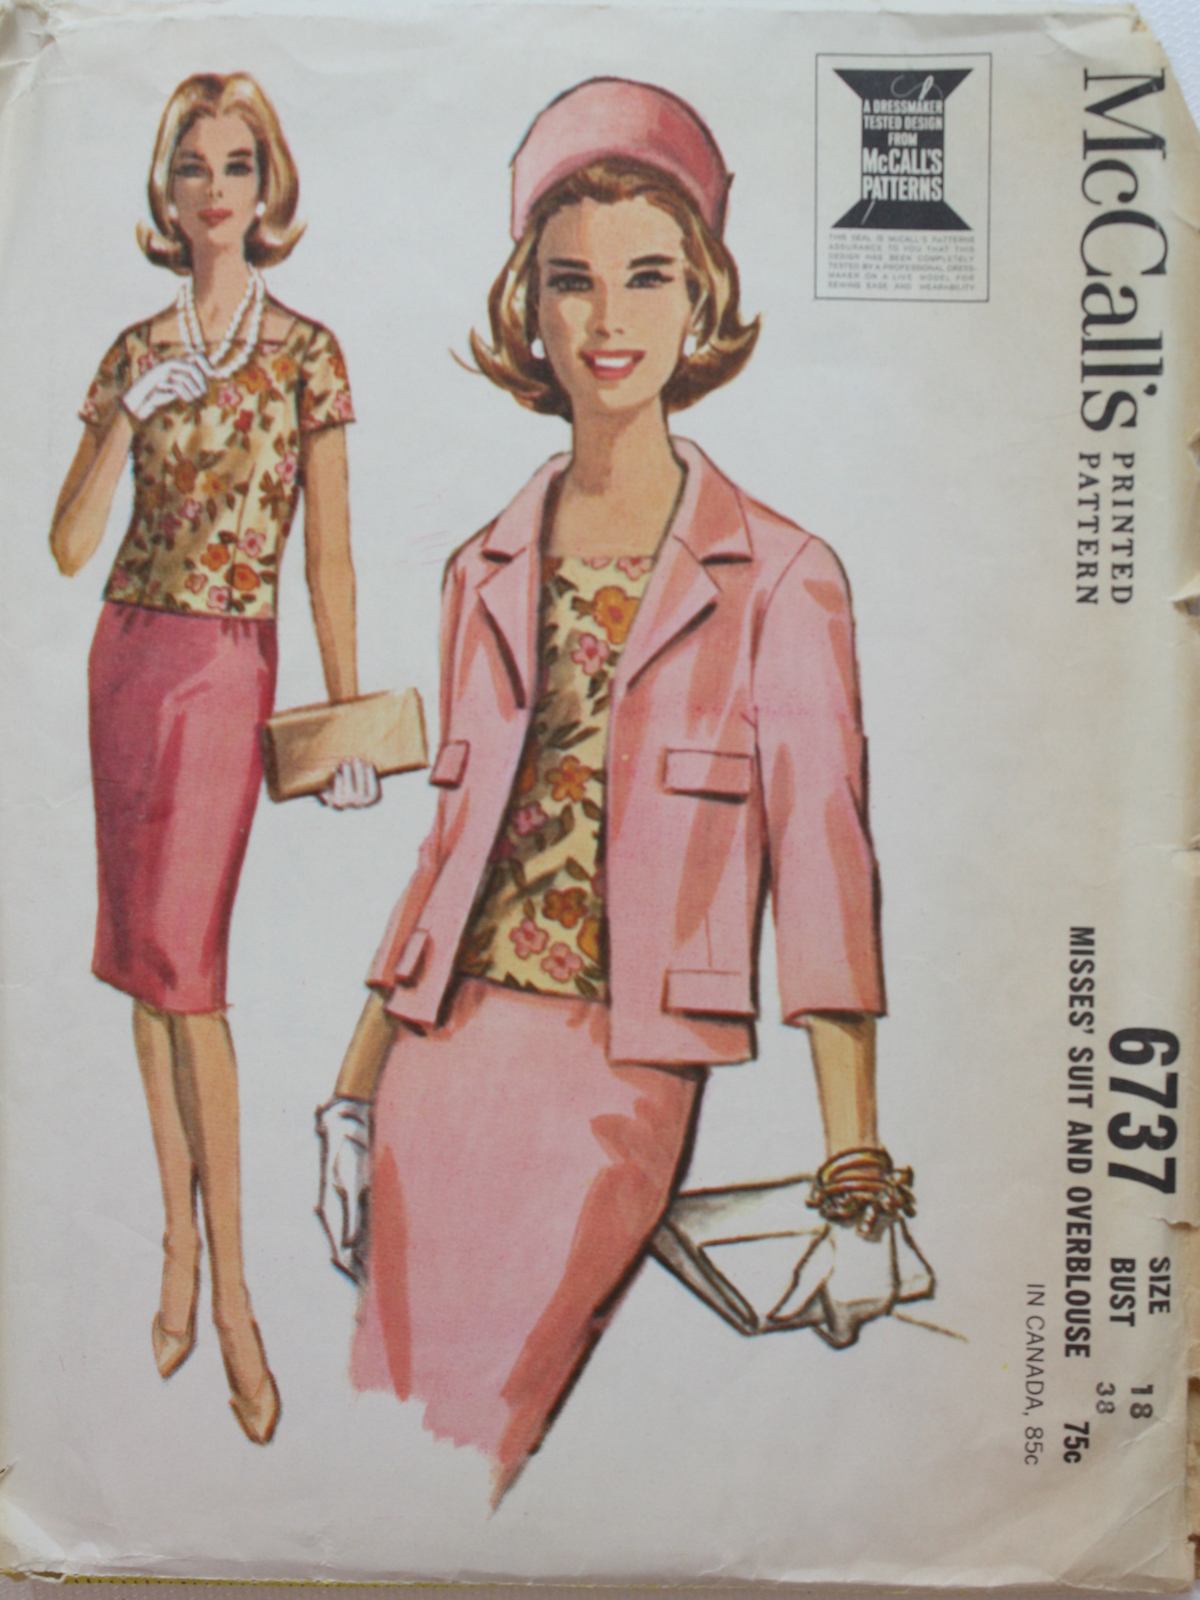 a3899645b5 1960's Vintage McCalls Pattern No. 6737 Sewing Pattern: Mid 60s ...